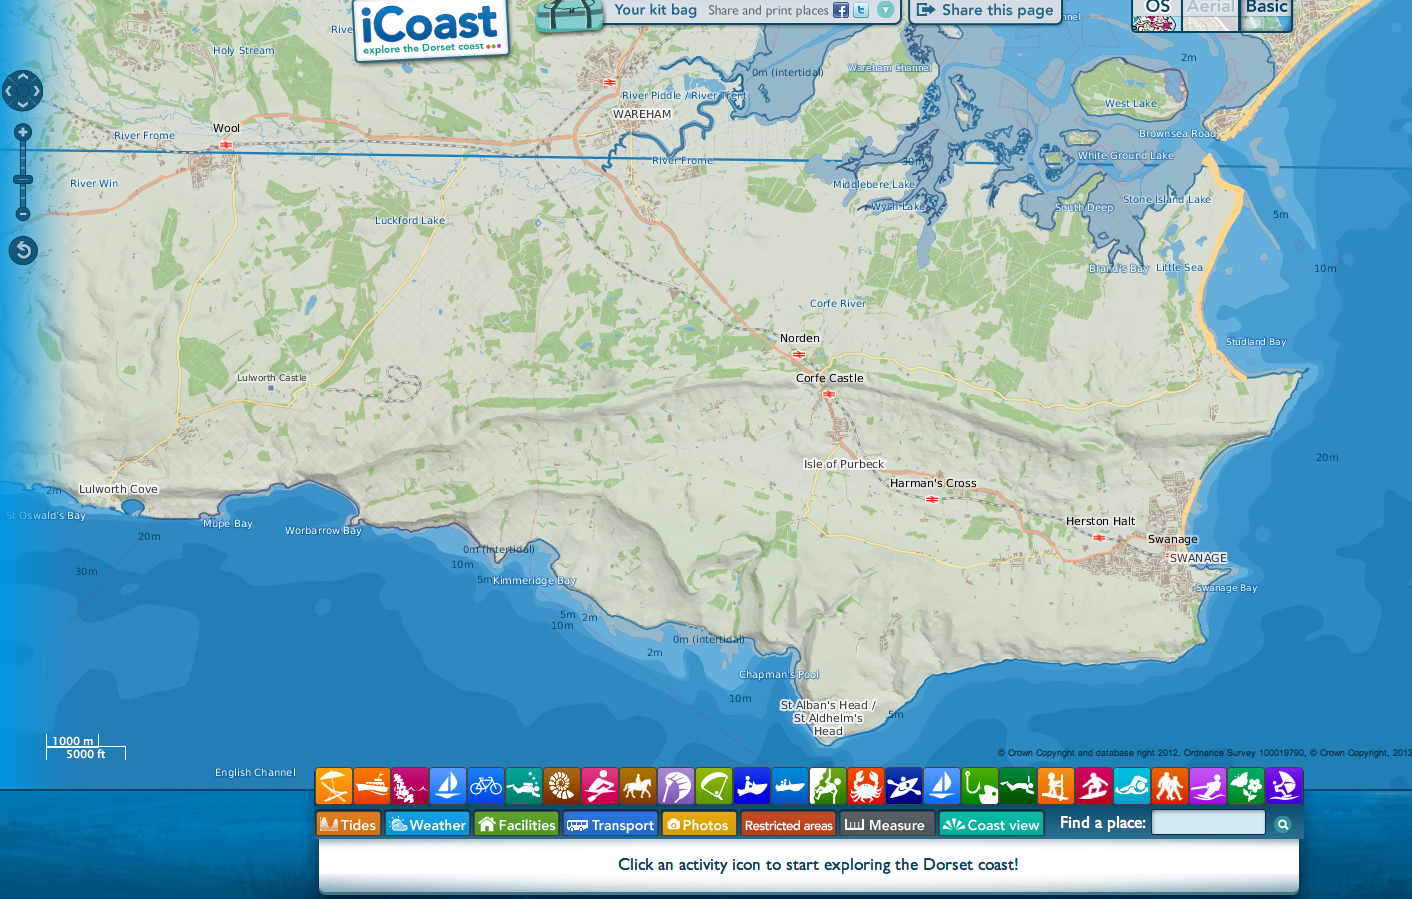 iCoast app based on Open Data from Ordnance Survey